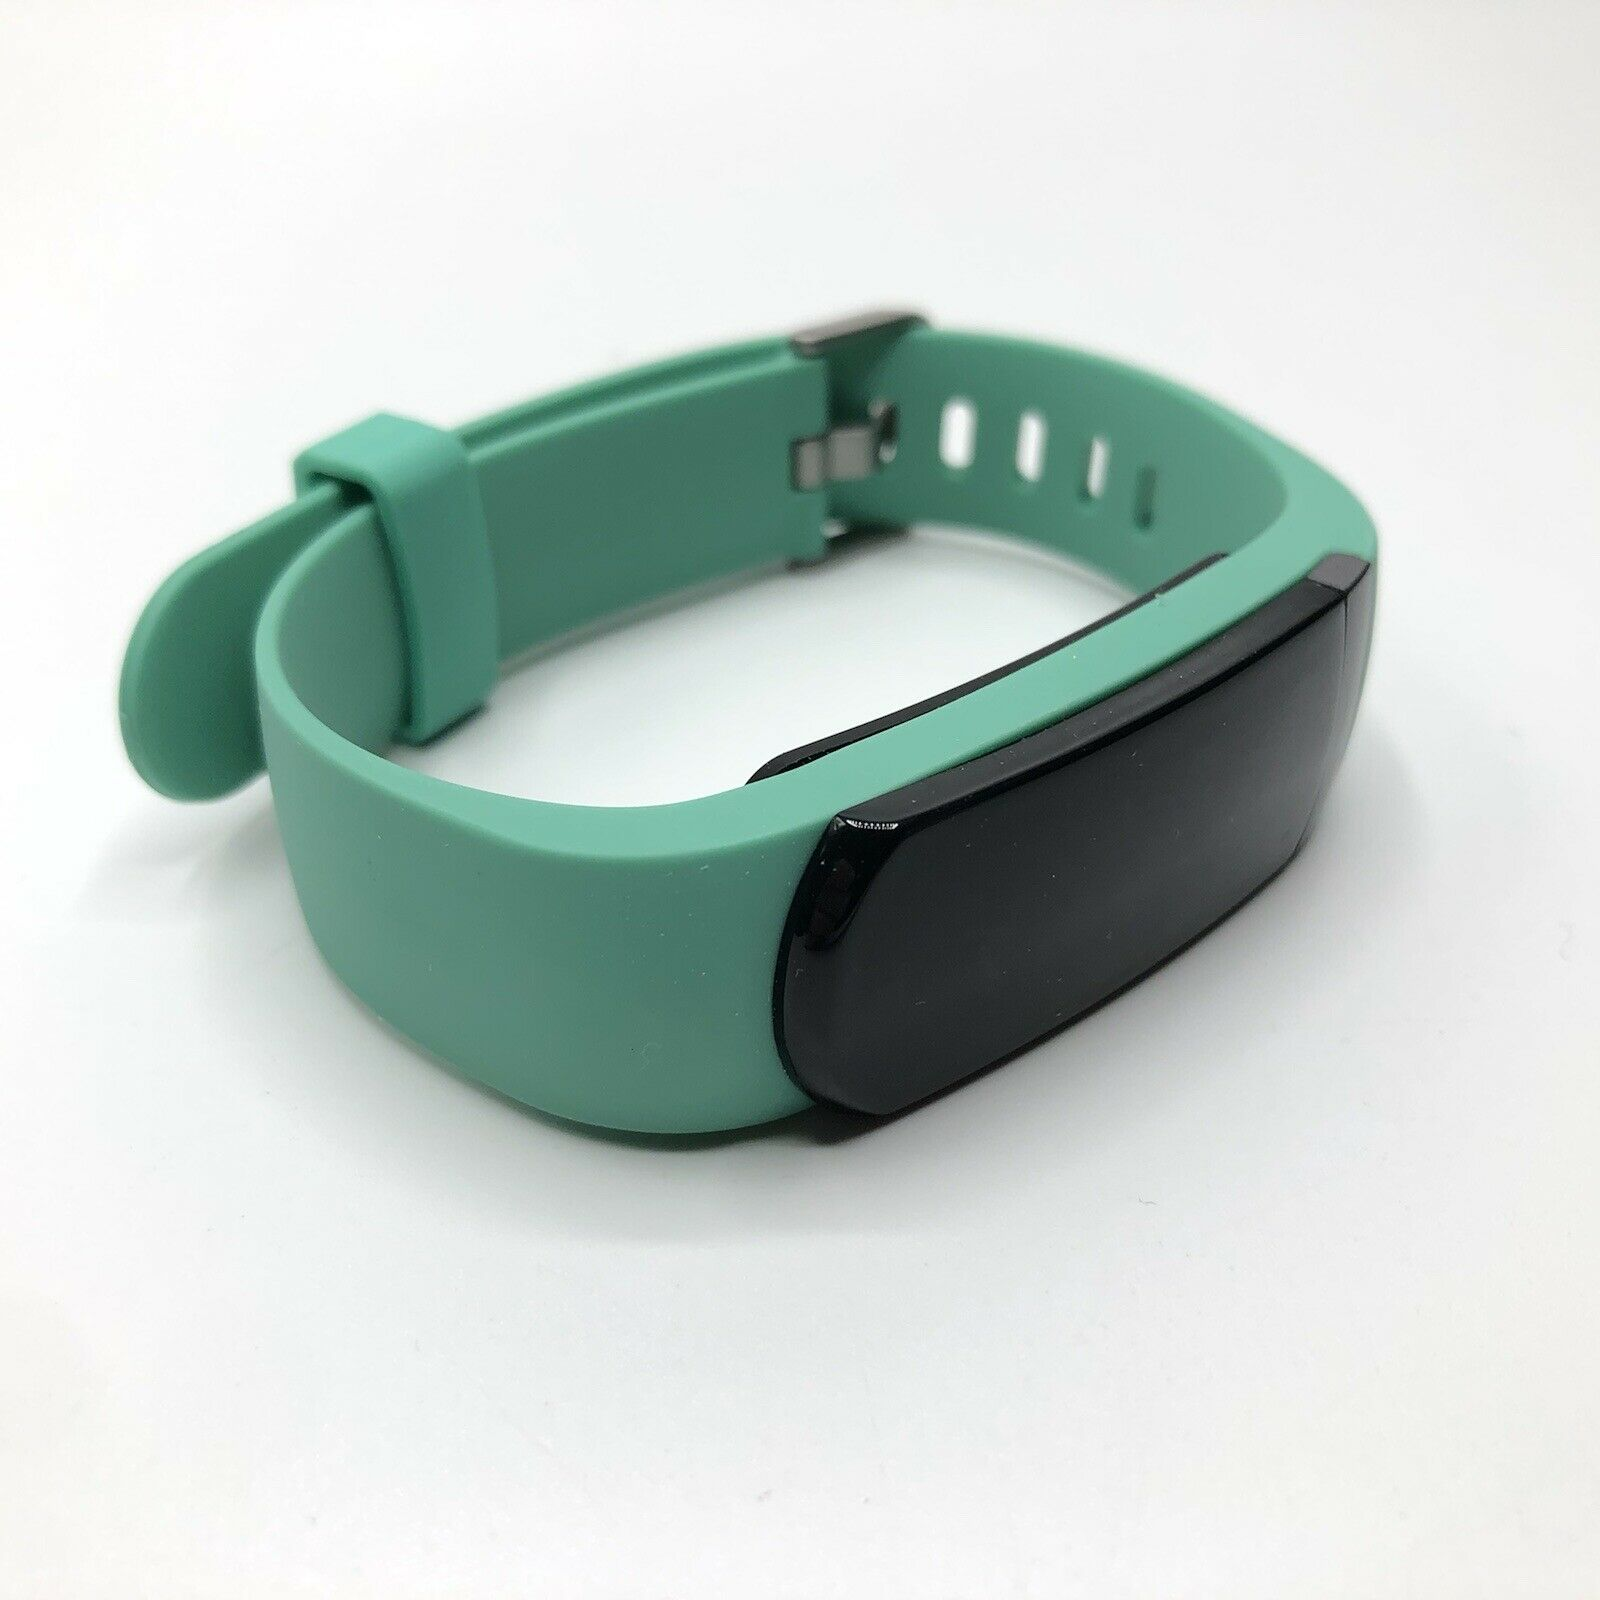 Willful SW330 Fitness Tracker Heart Rate Monitor Green And Black Band Included and black fitness green heart monitor rate sw330 tracker willful